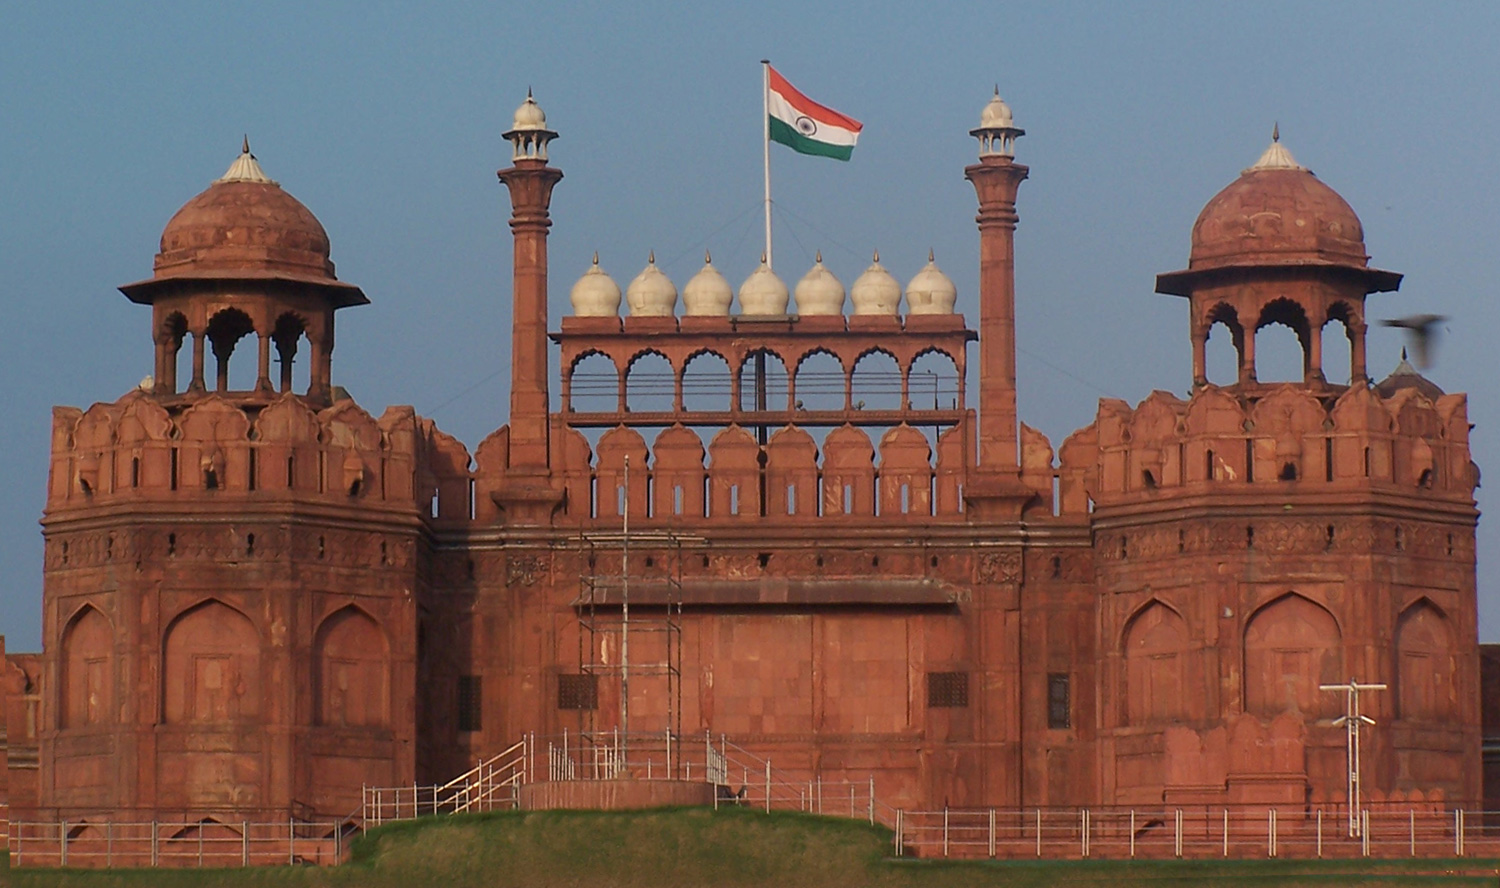 Red Fort Lal Qila Delhi Photos Images And Wallpapers Hd Images